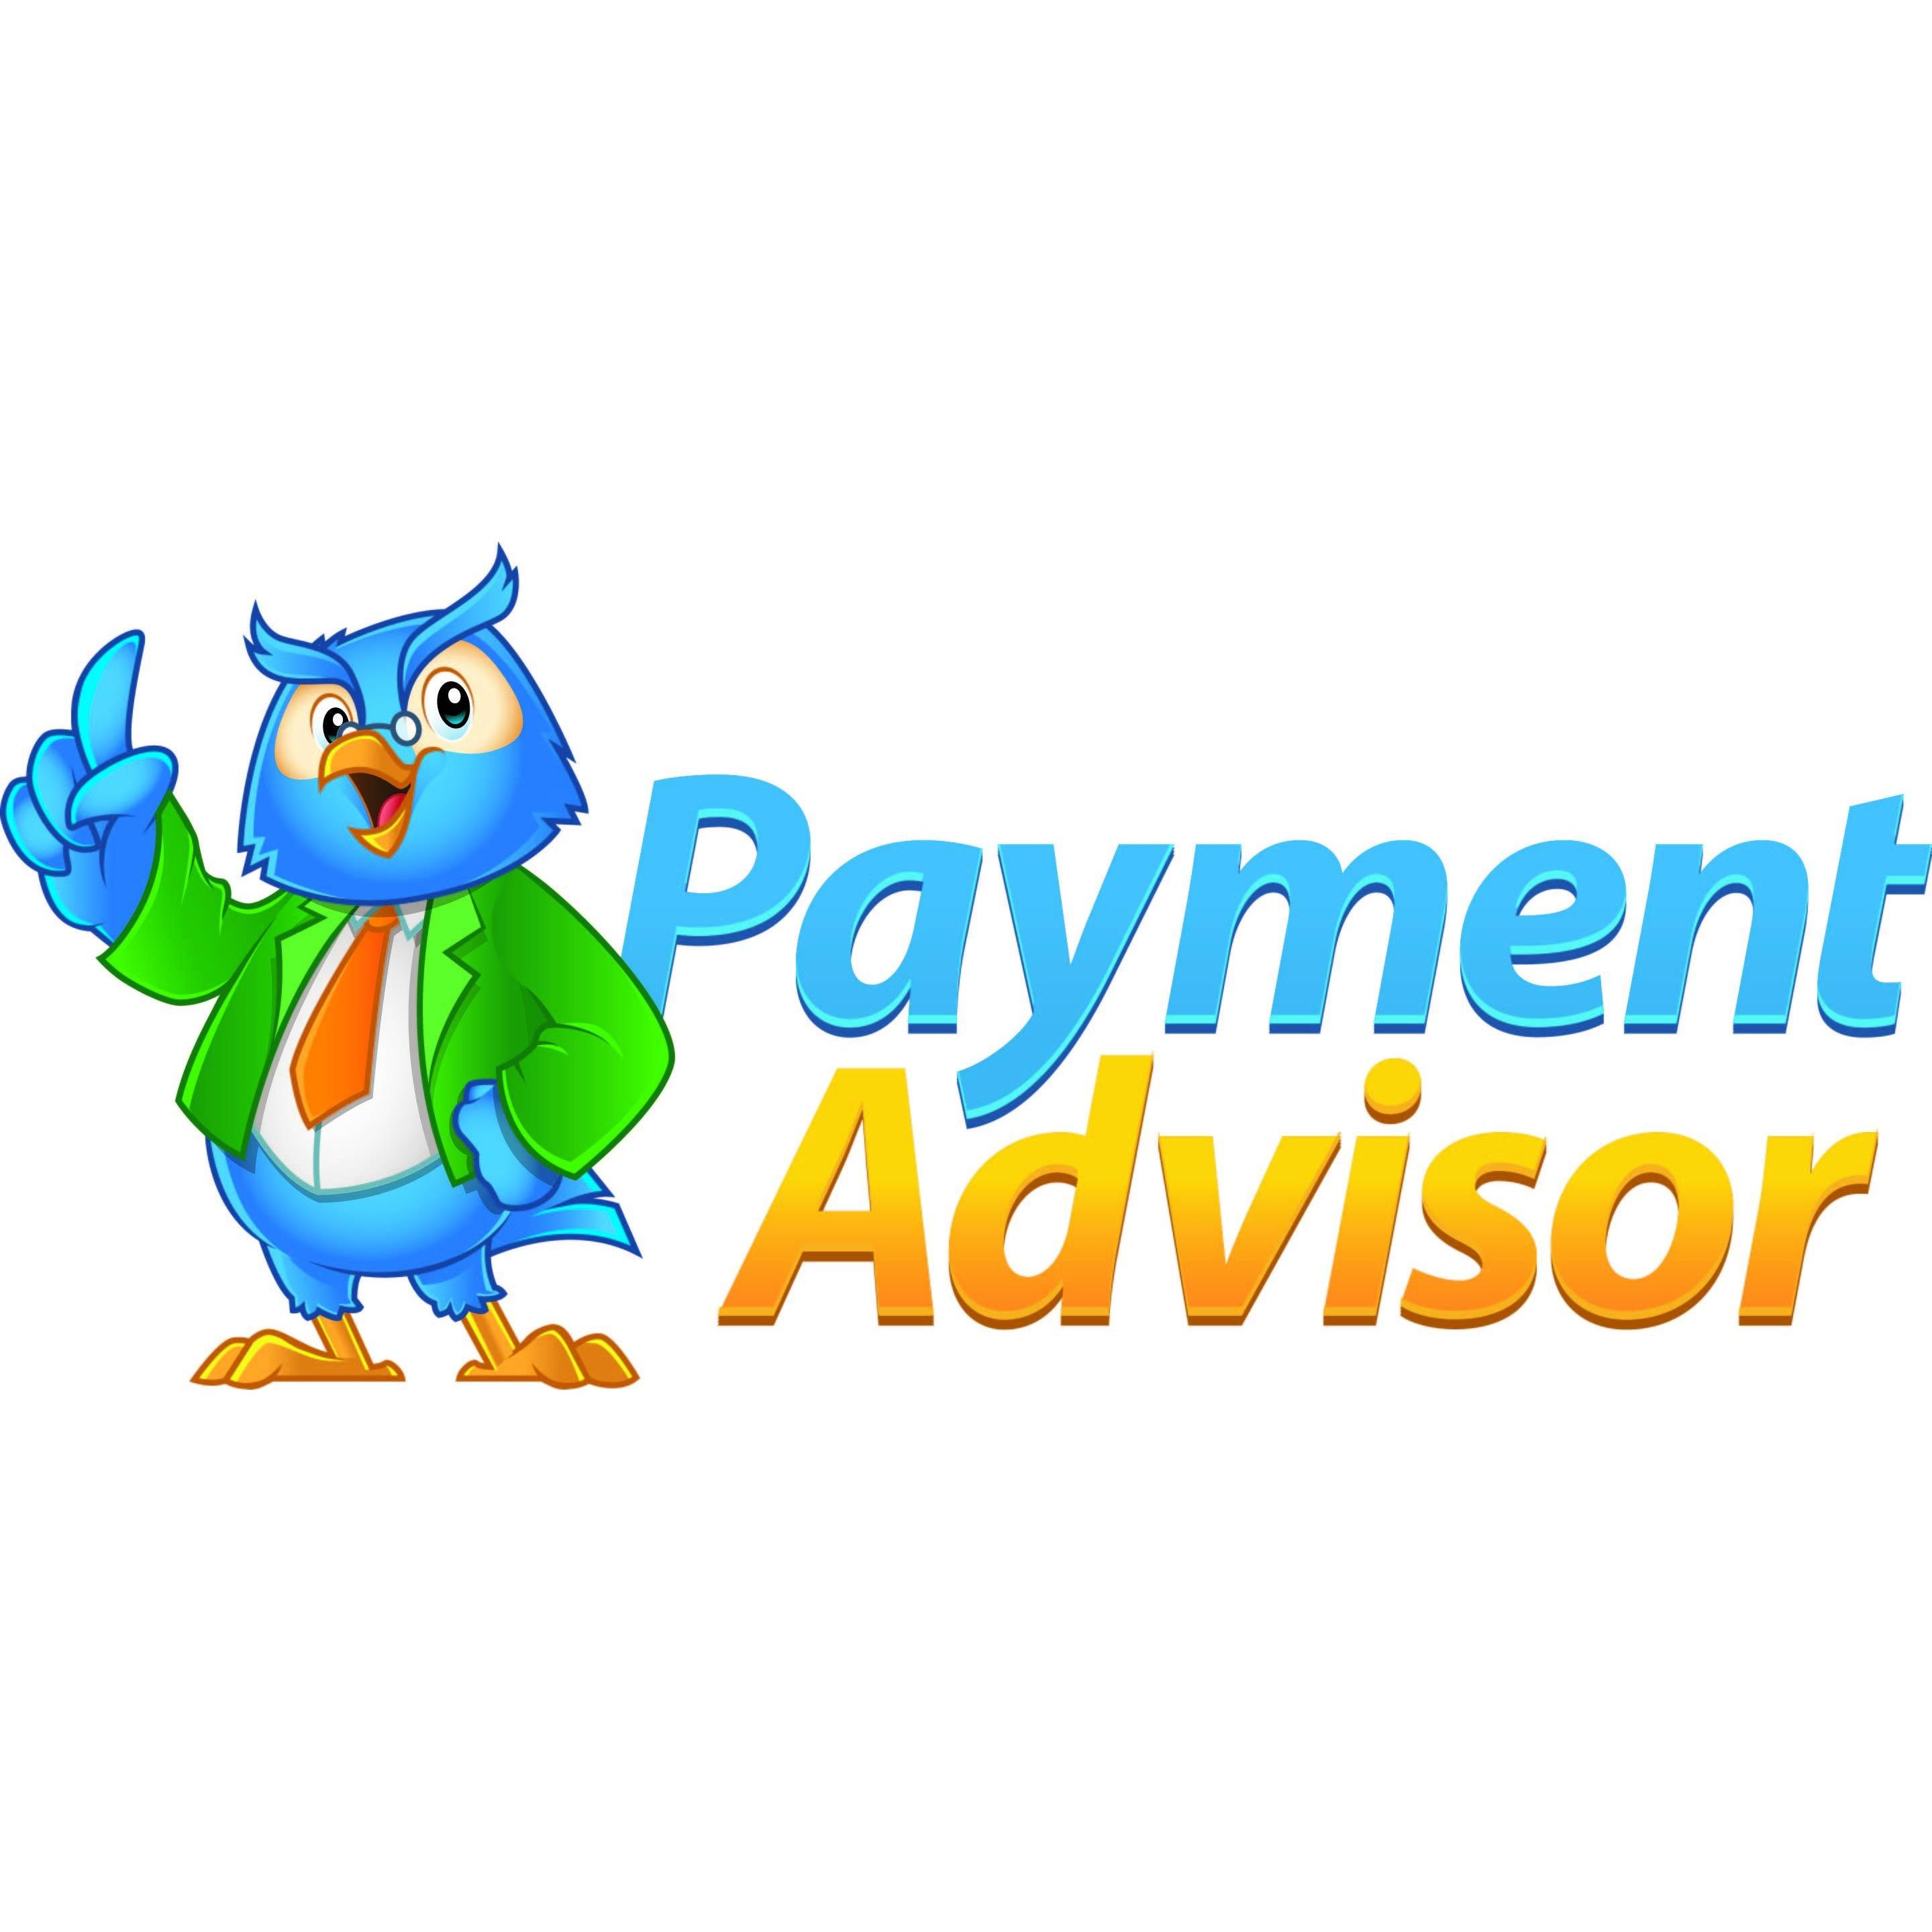 The Payment Advisors